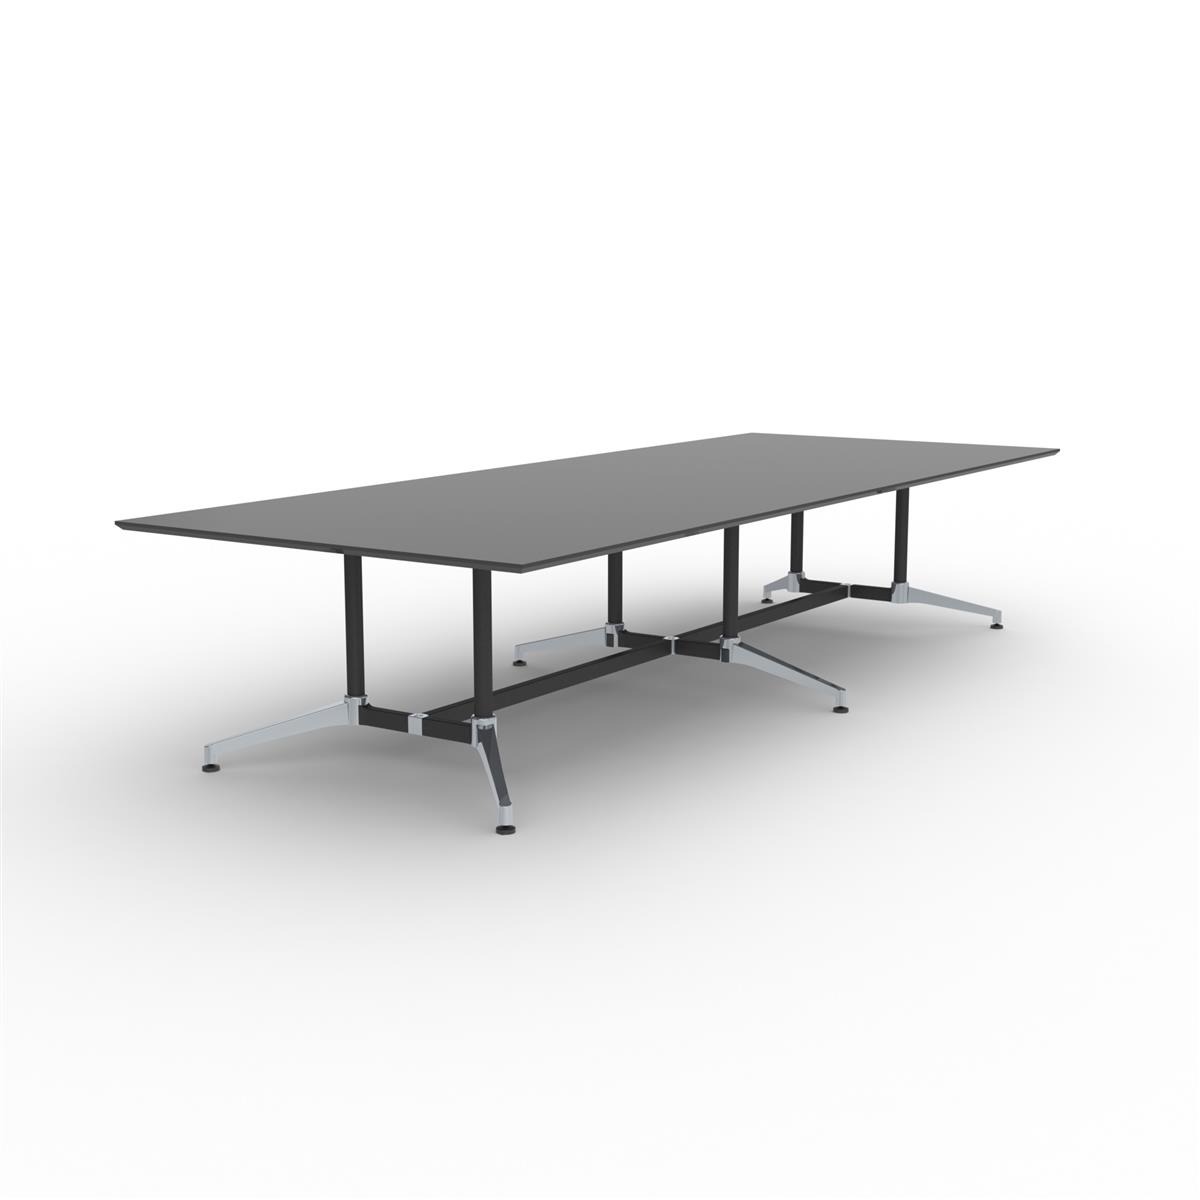 X1 Seamless Table 360 x 140 - sort linoleum & sort/aluminium